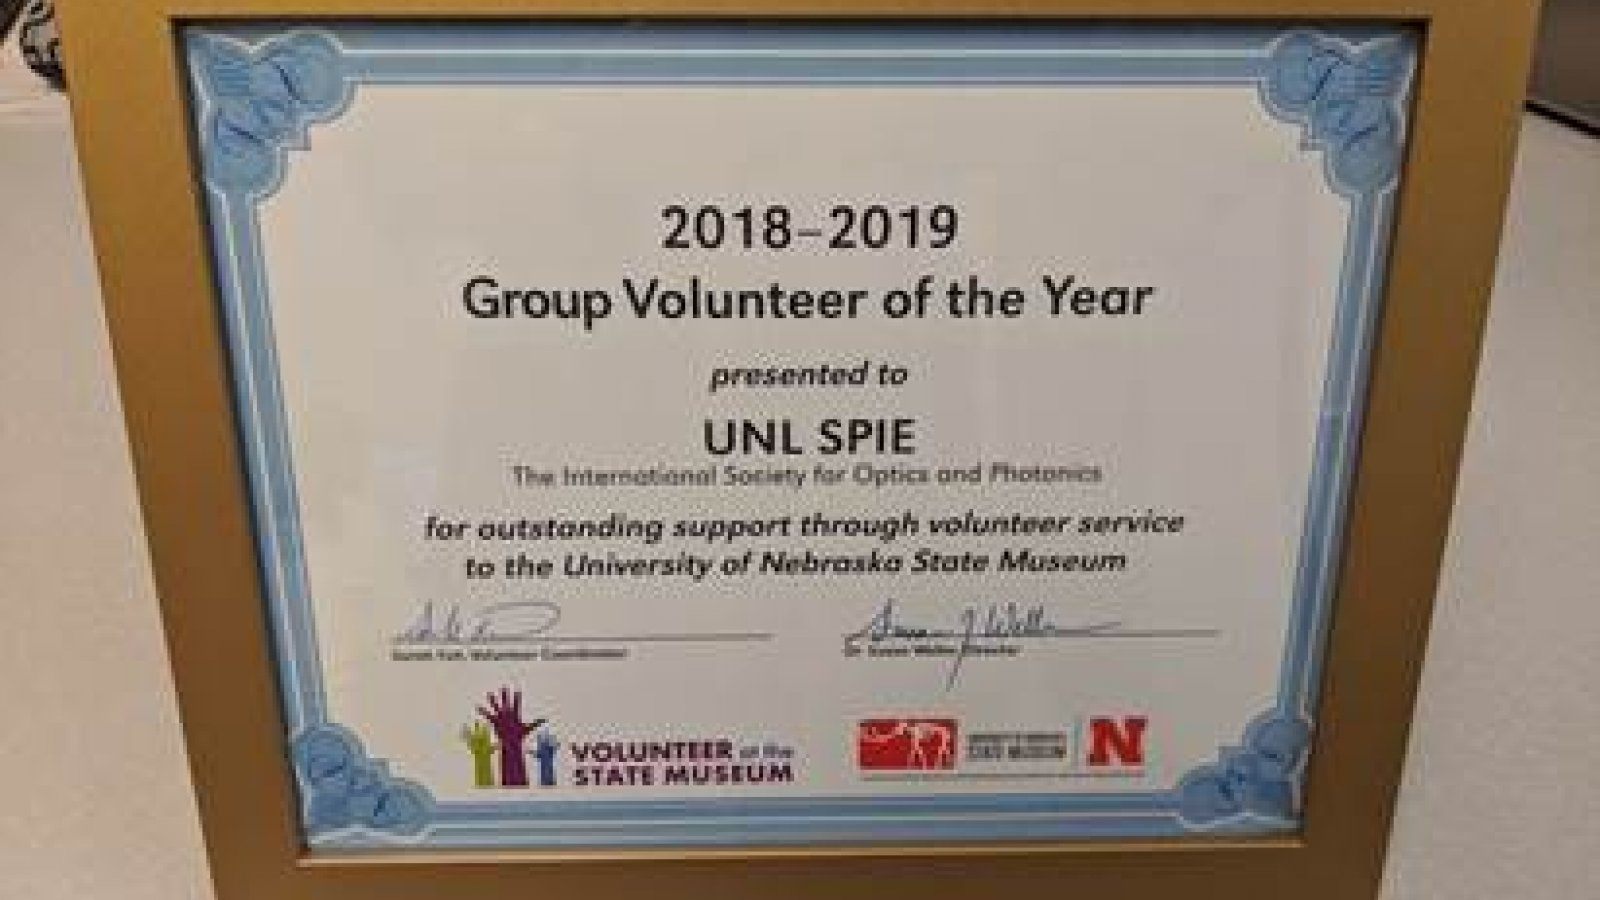 The Nebraska student chapter of SPIE, the international society for optics and photonics, was honored as the 2019 Group Volunteer of the Year by the State Museum.